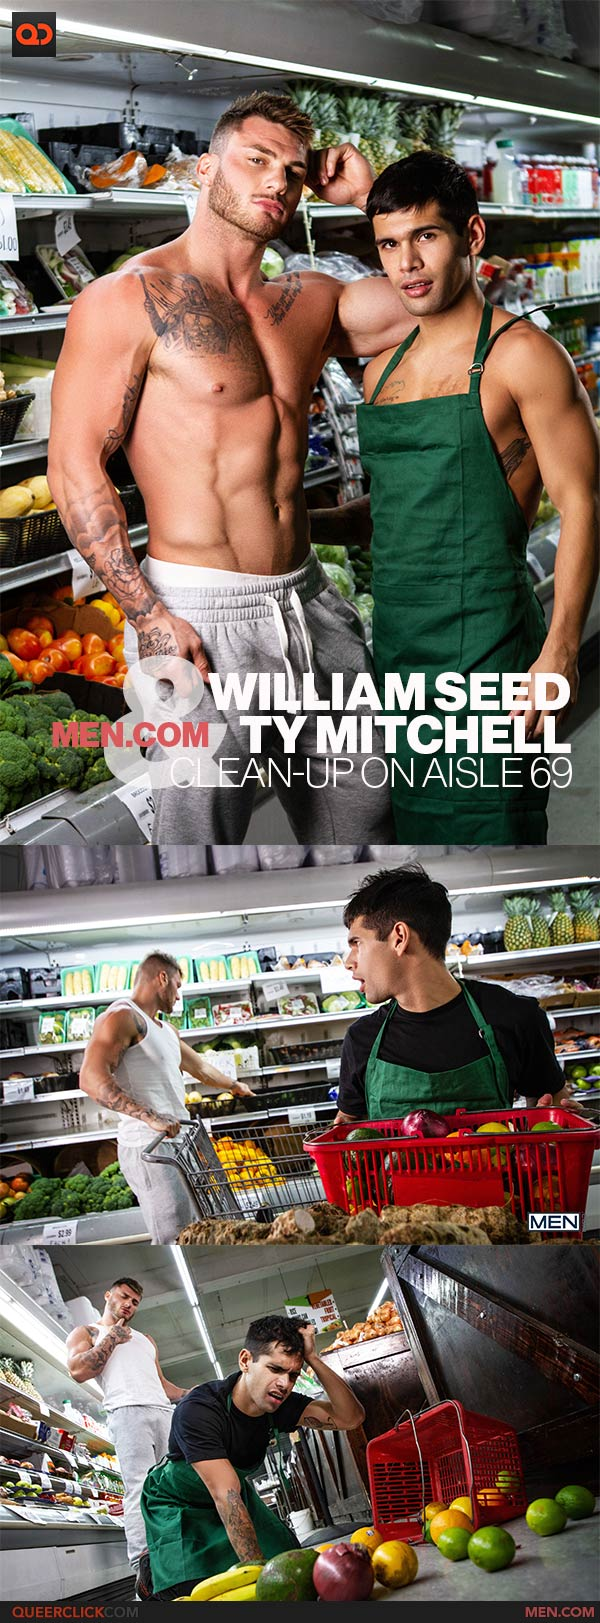 Men.com: William Seed and Ty Mitchell